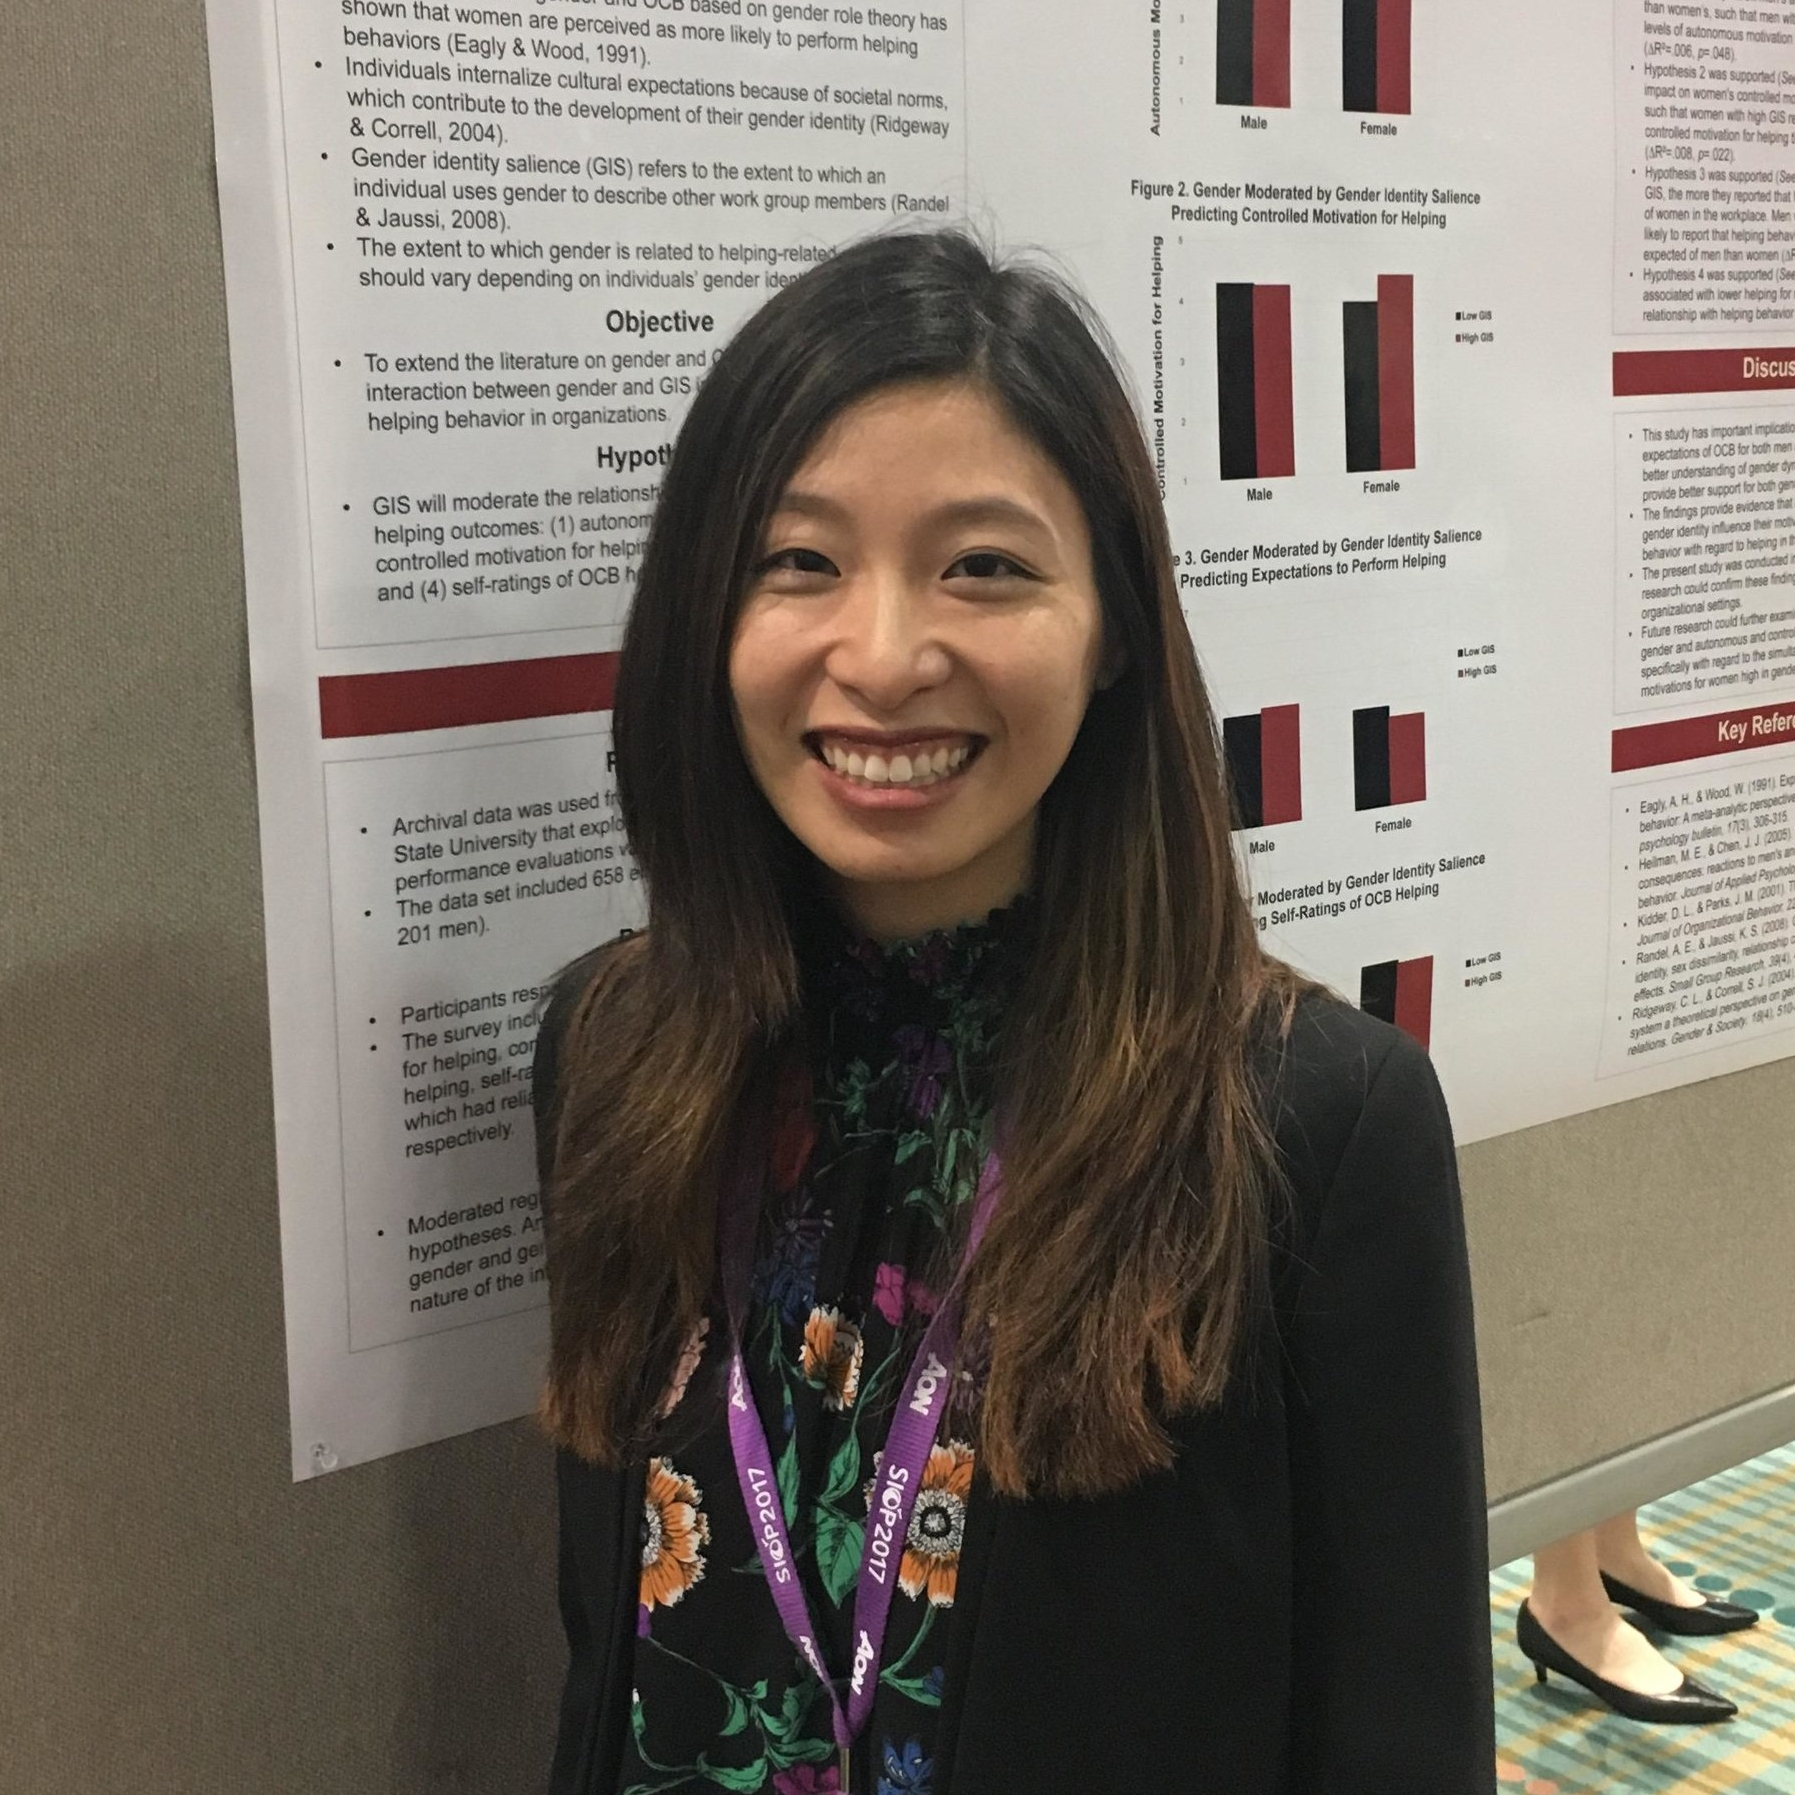 Joyce hwang  | MASTER's IN I/O PSYCH, san diego state UNIVERSITY 2017 | former Research AssistanT